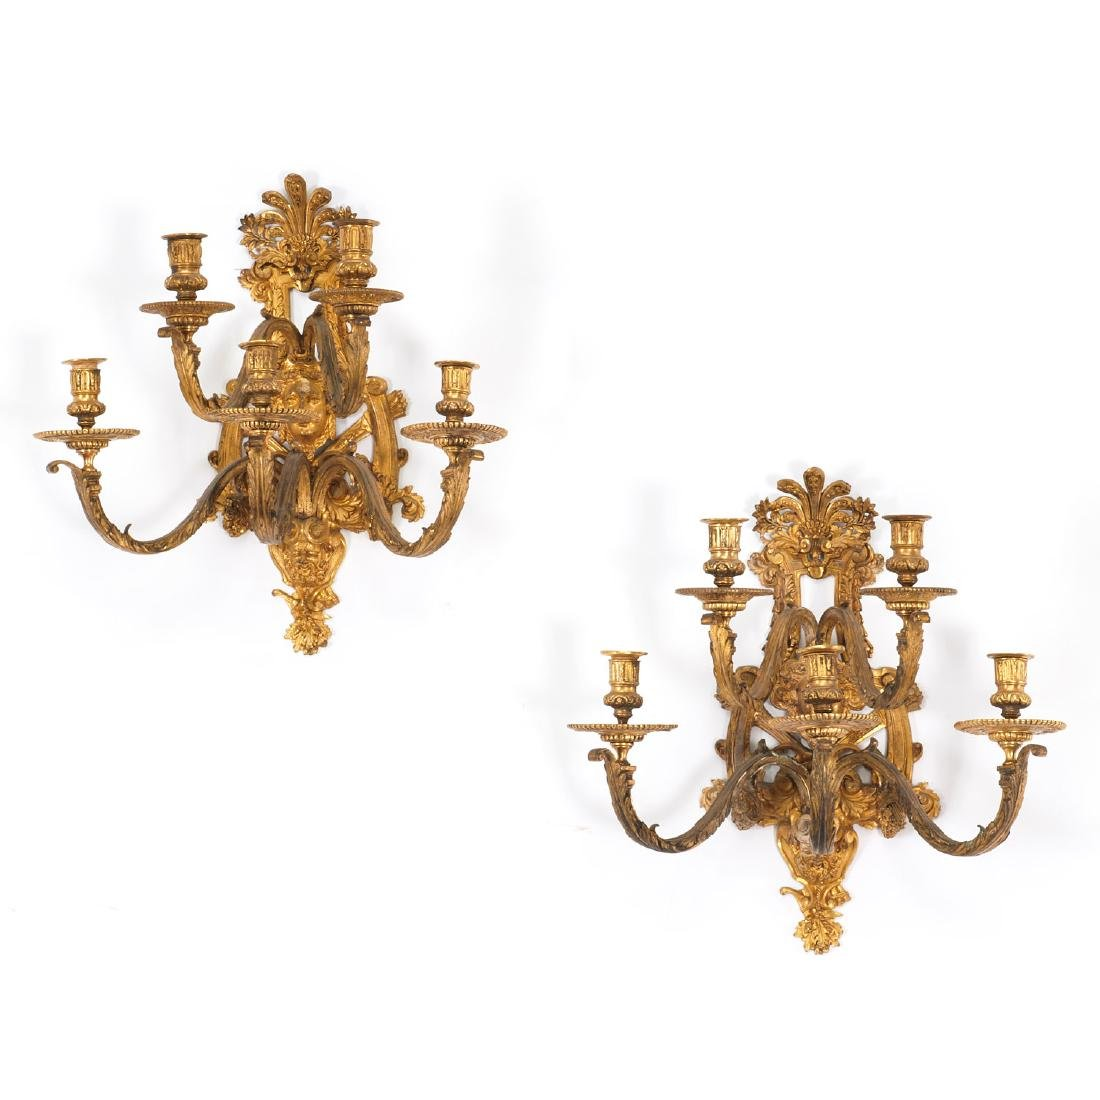 Nice pair antique Regence style wall sconces